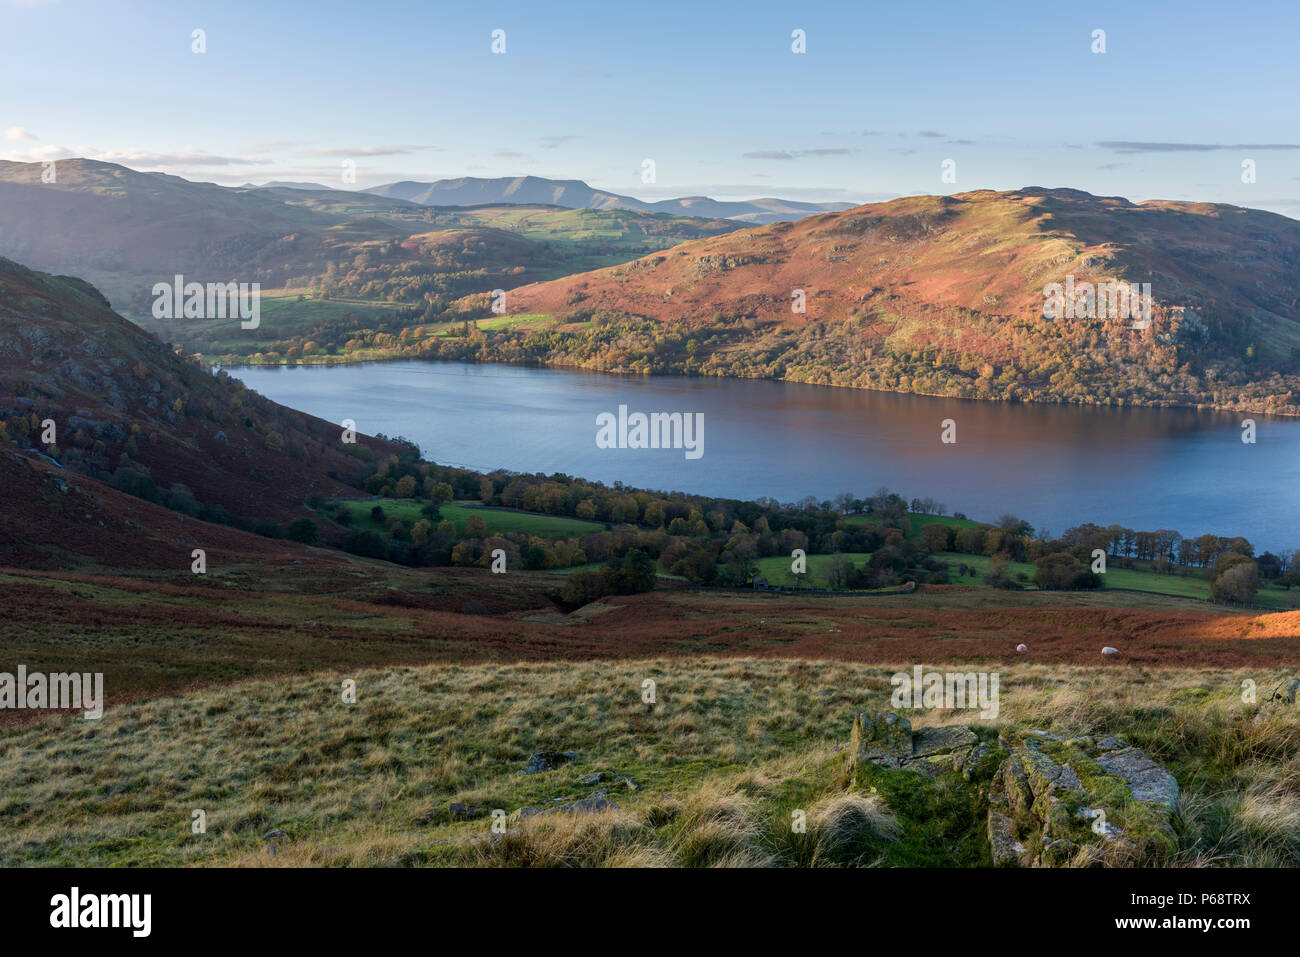 Gowbarrow Fell and Ullswater from Sleet Fell in the Lake District National Park, Cumbria, England. - Stock Image